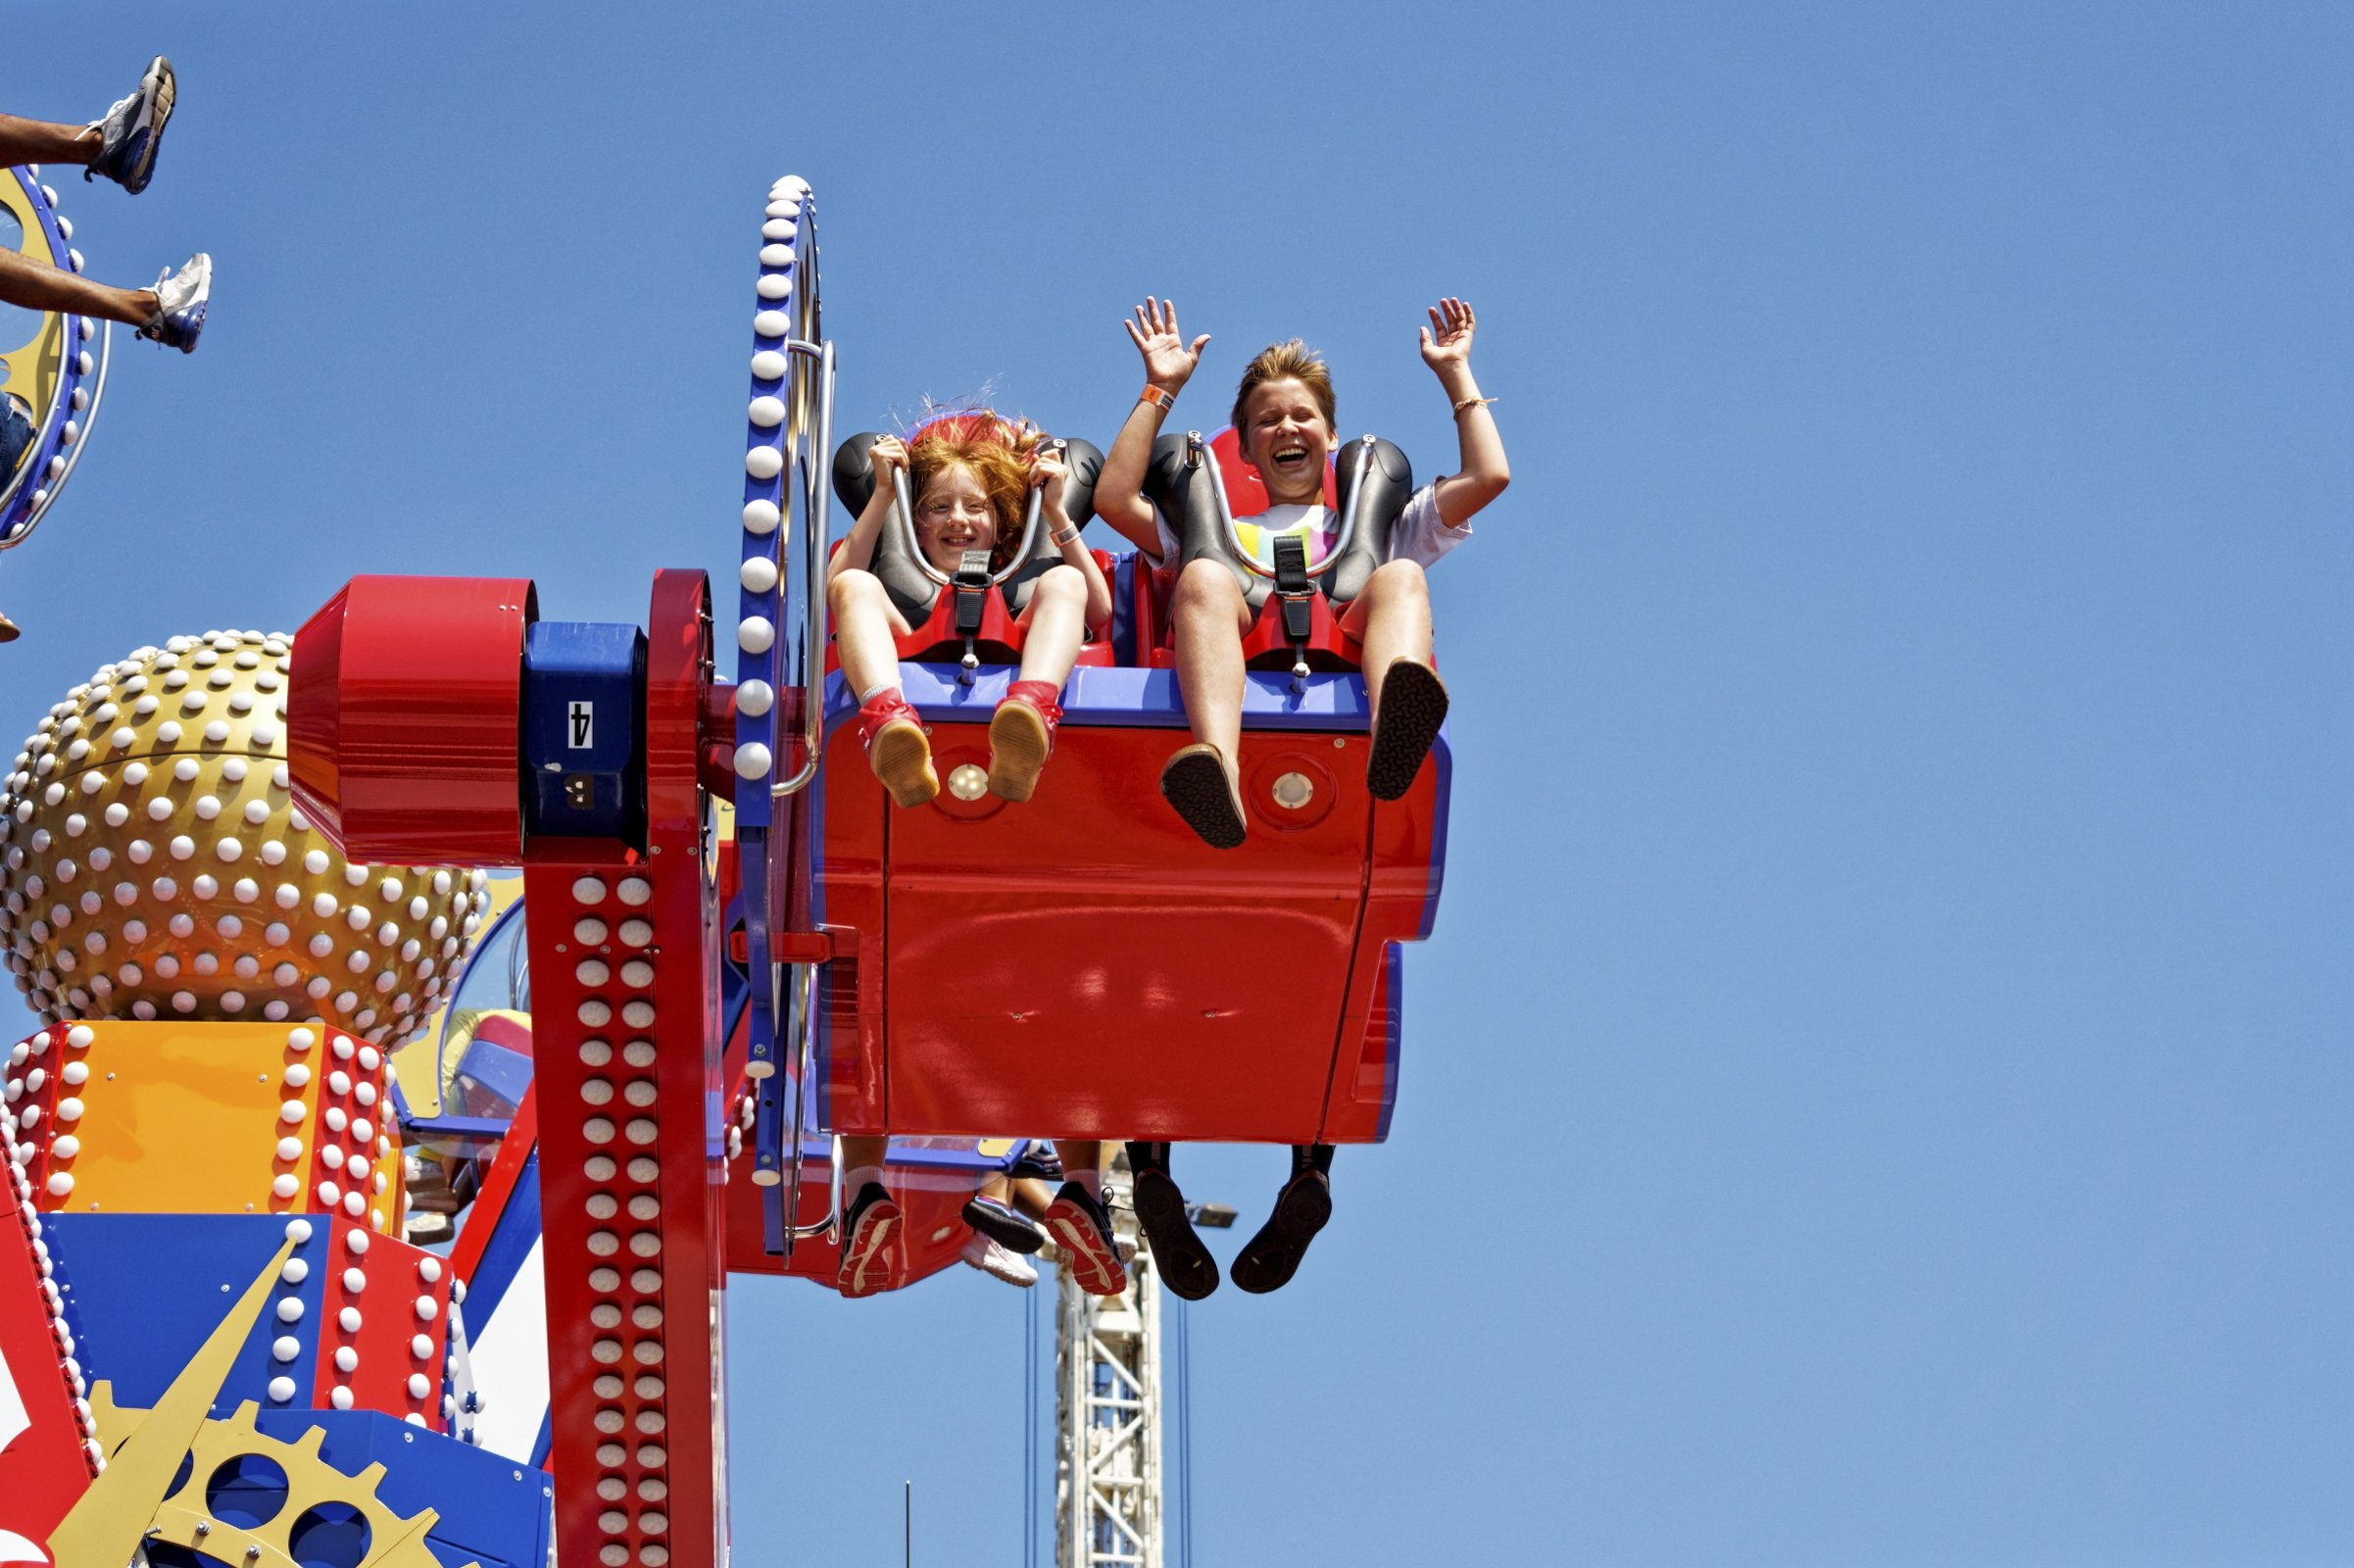 The Zamperla Family Donates 10,000 Wristbands and Rides on the Coney Island Cyclone!